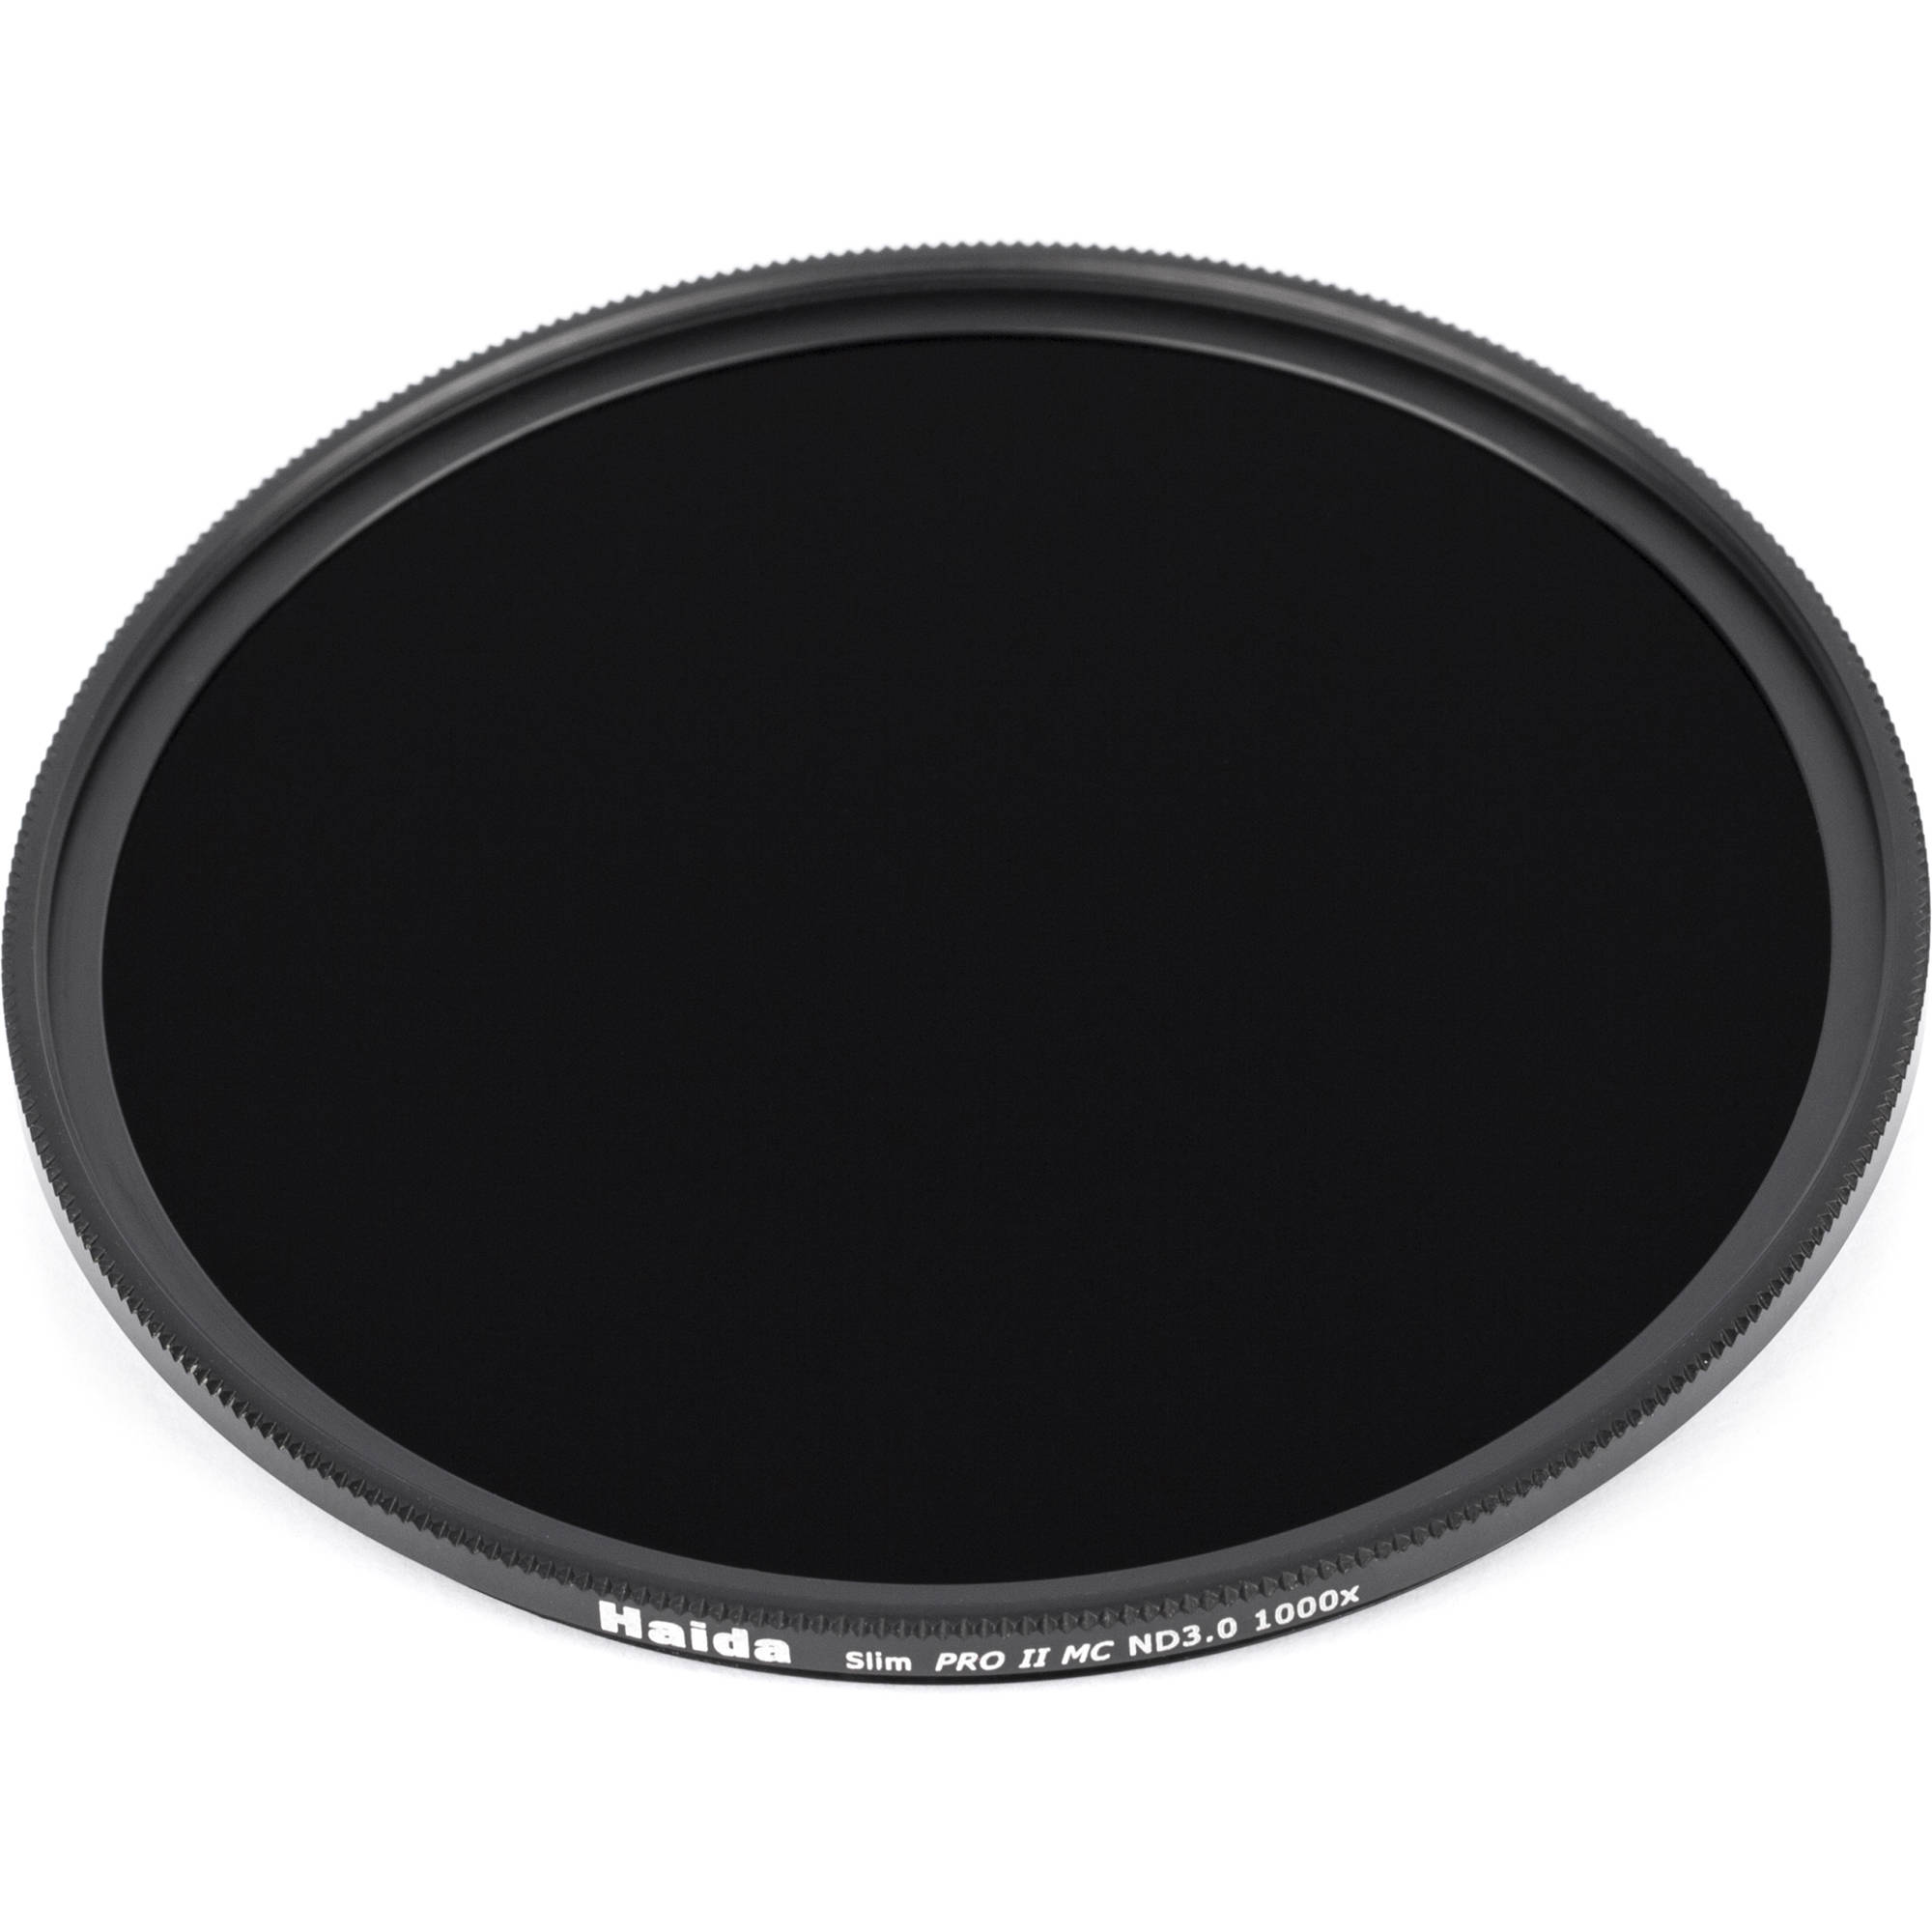 nd filters 2 image